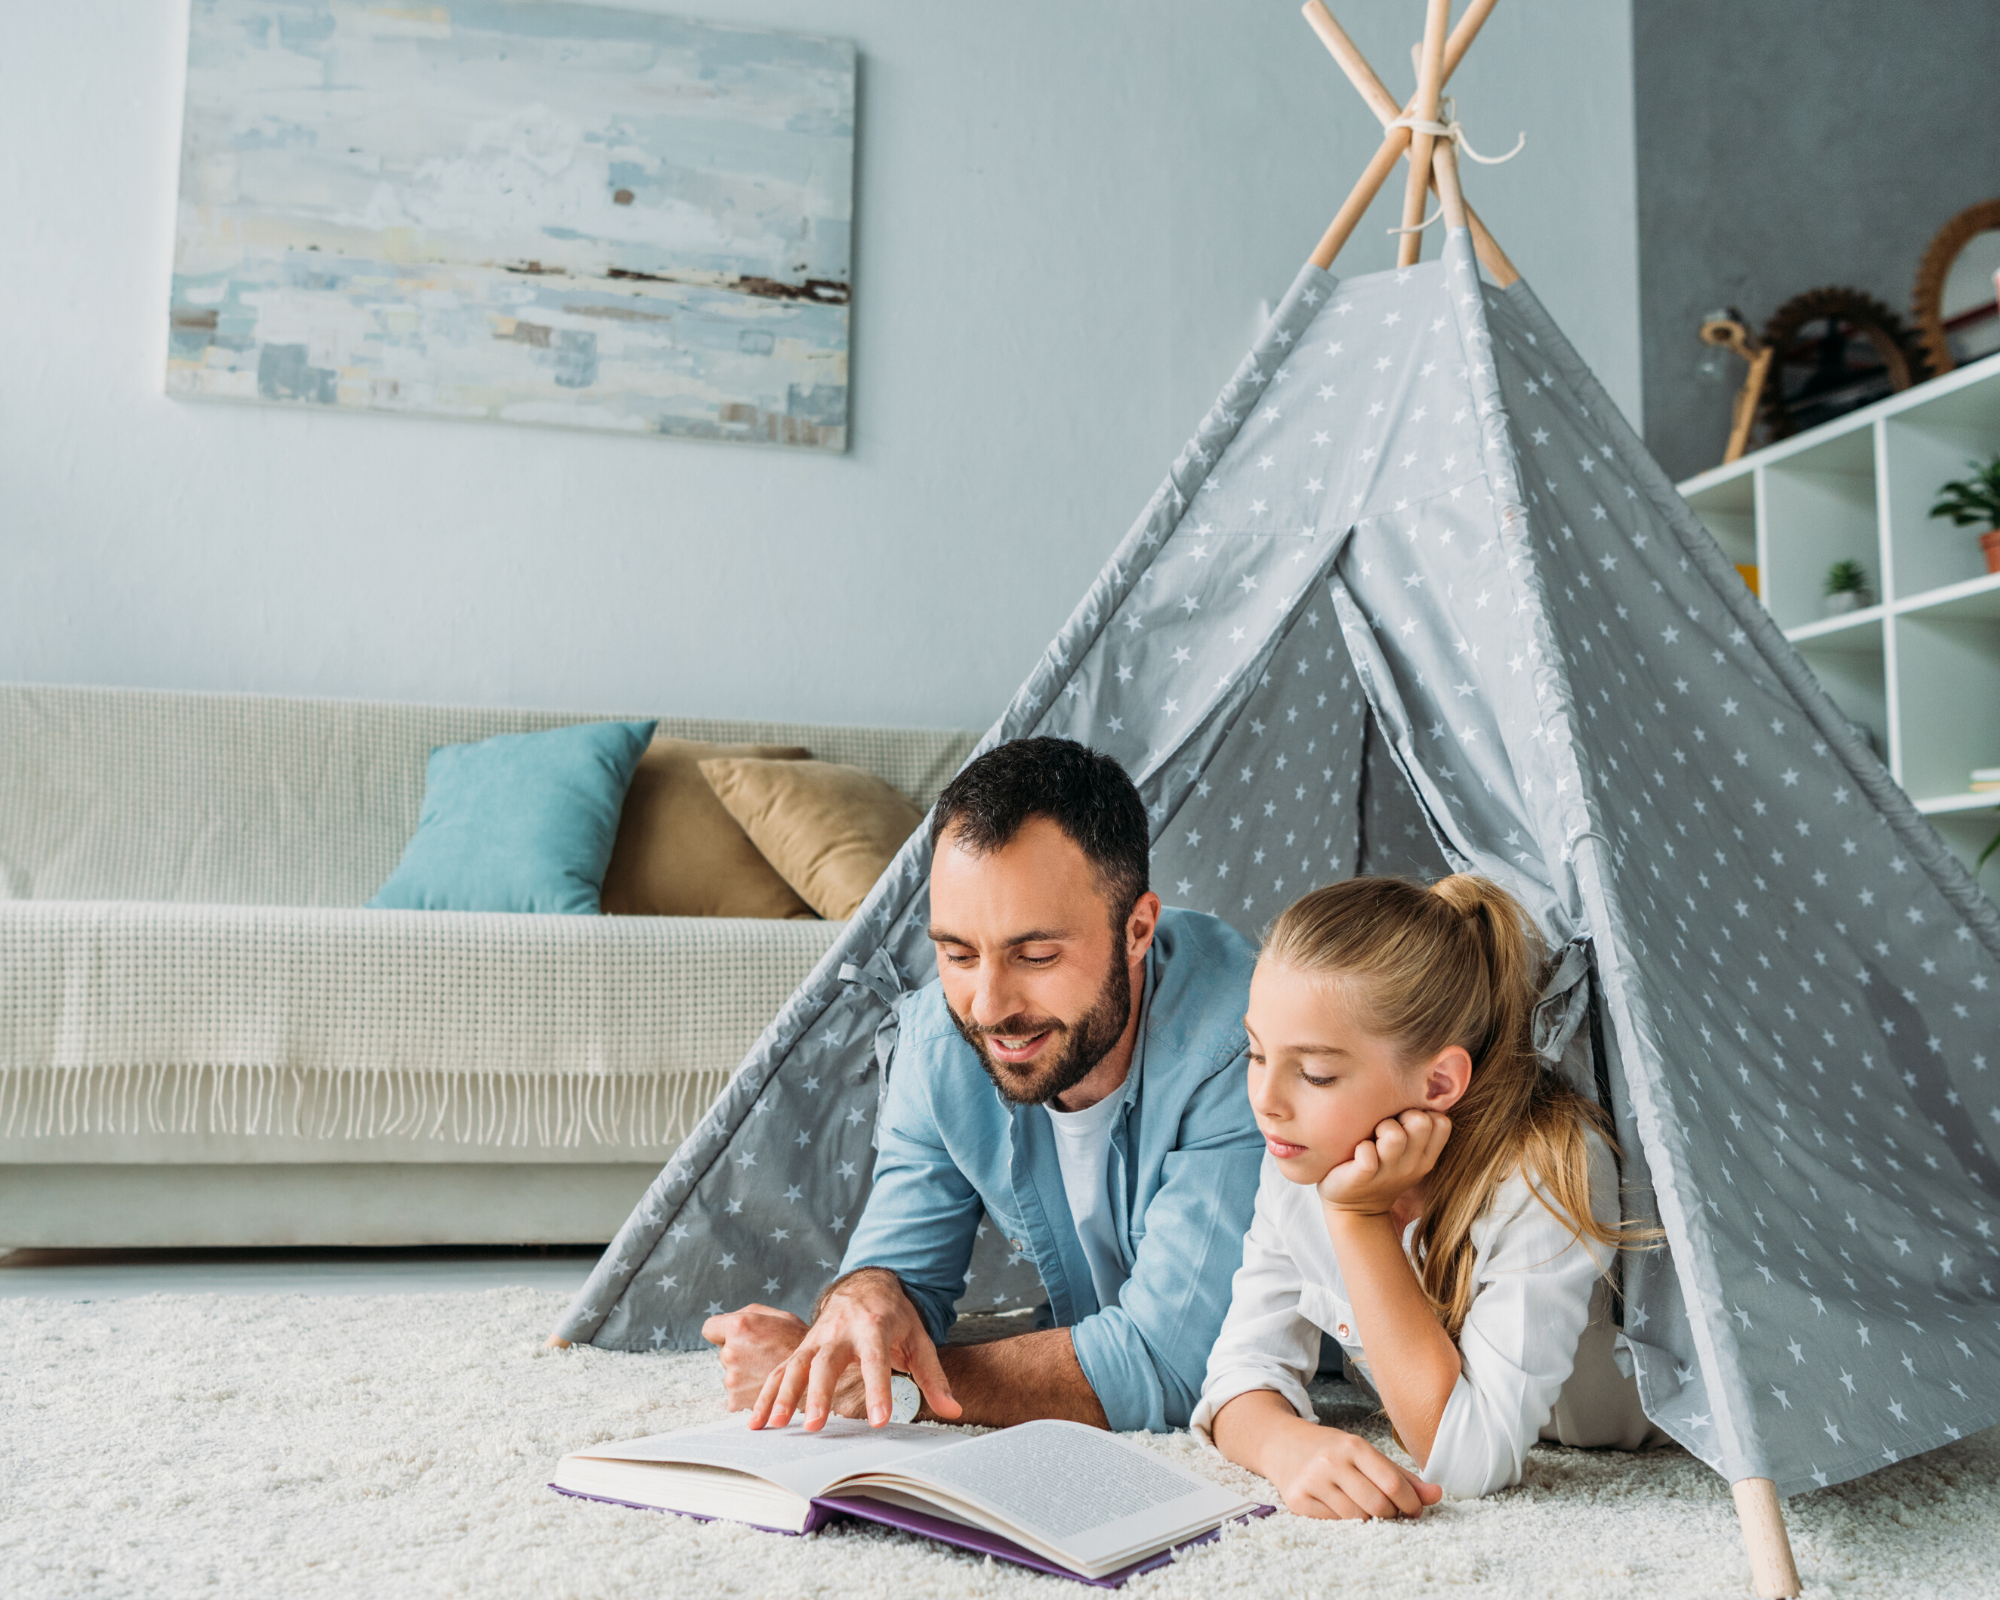 dad reading with daughter in a tent - activities for adults and kids